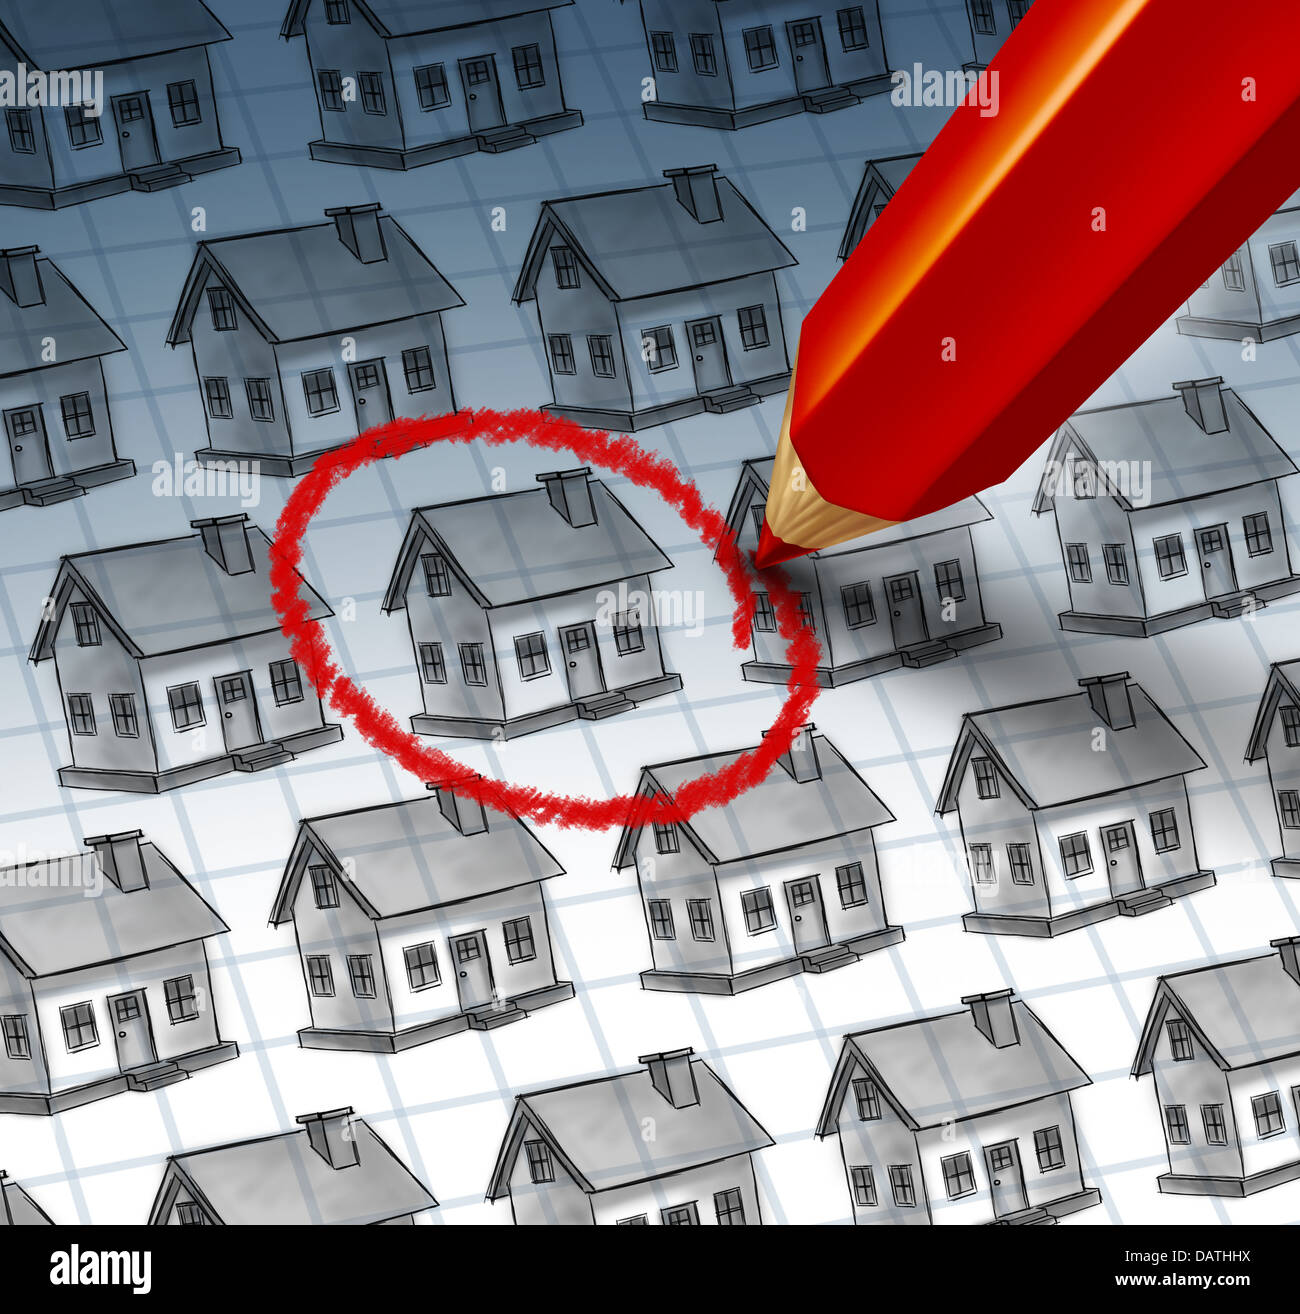 Choosing a home and house search concept with a red pencil crayon highlighting a drawing from a group of houses - Stock Image